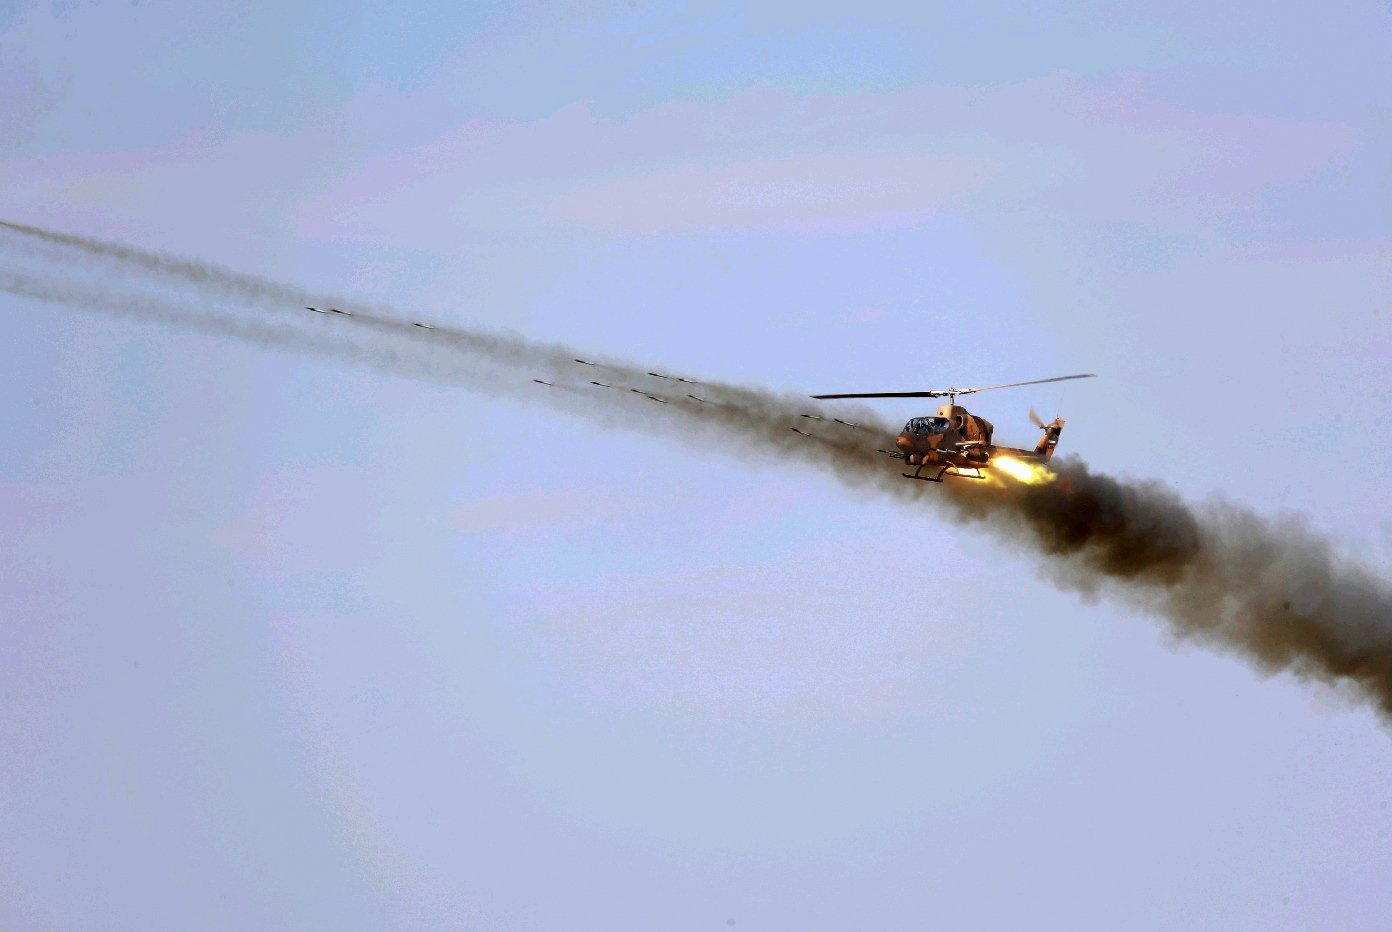 An Iranian army helicopter maneuvers during a military exercise in the northwest of the country, close to the Iranian-Azerbaijani border, Oct. 1, 2021. (AFP Photo)